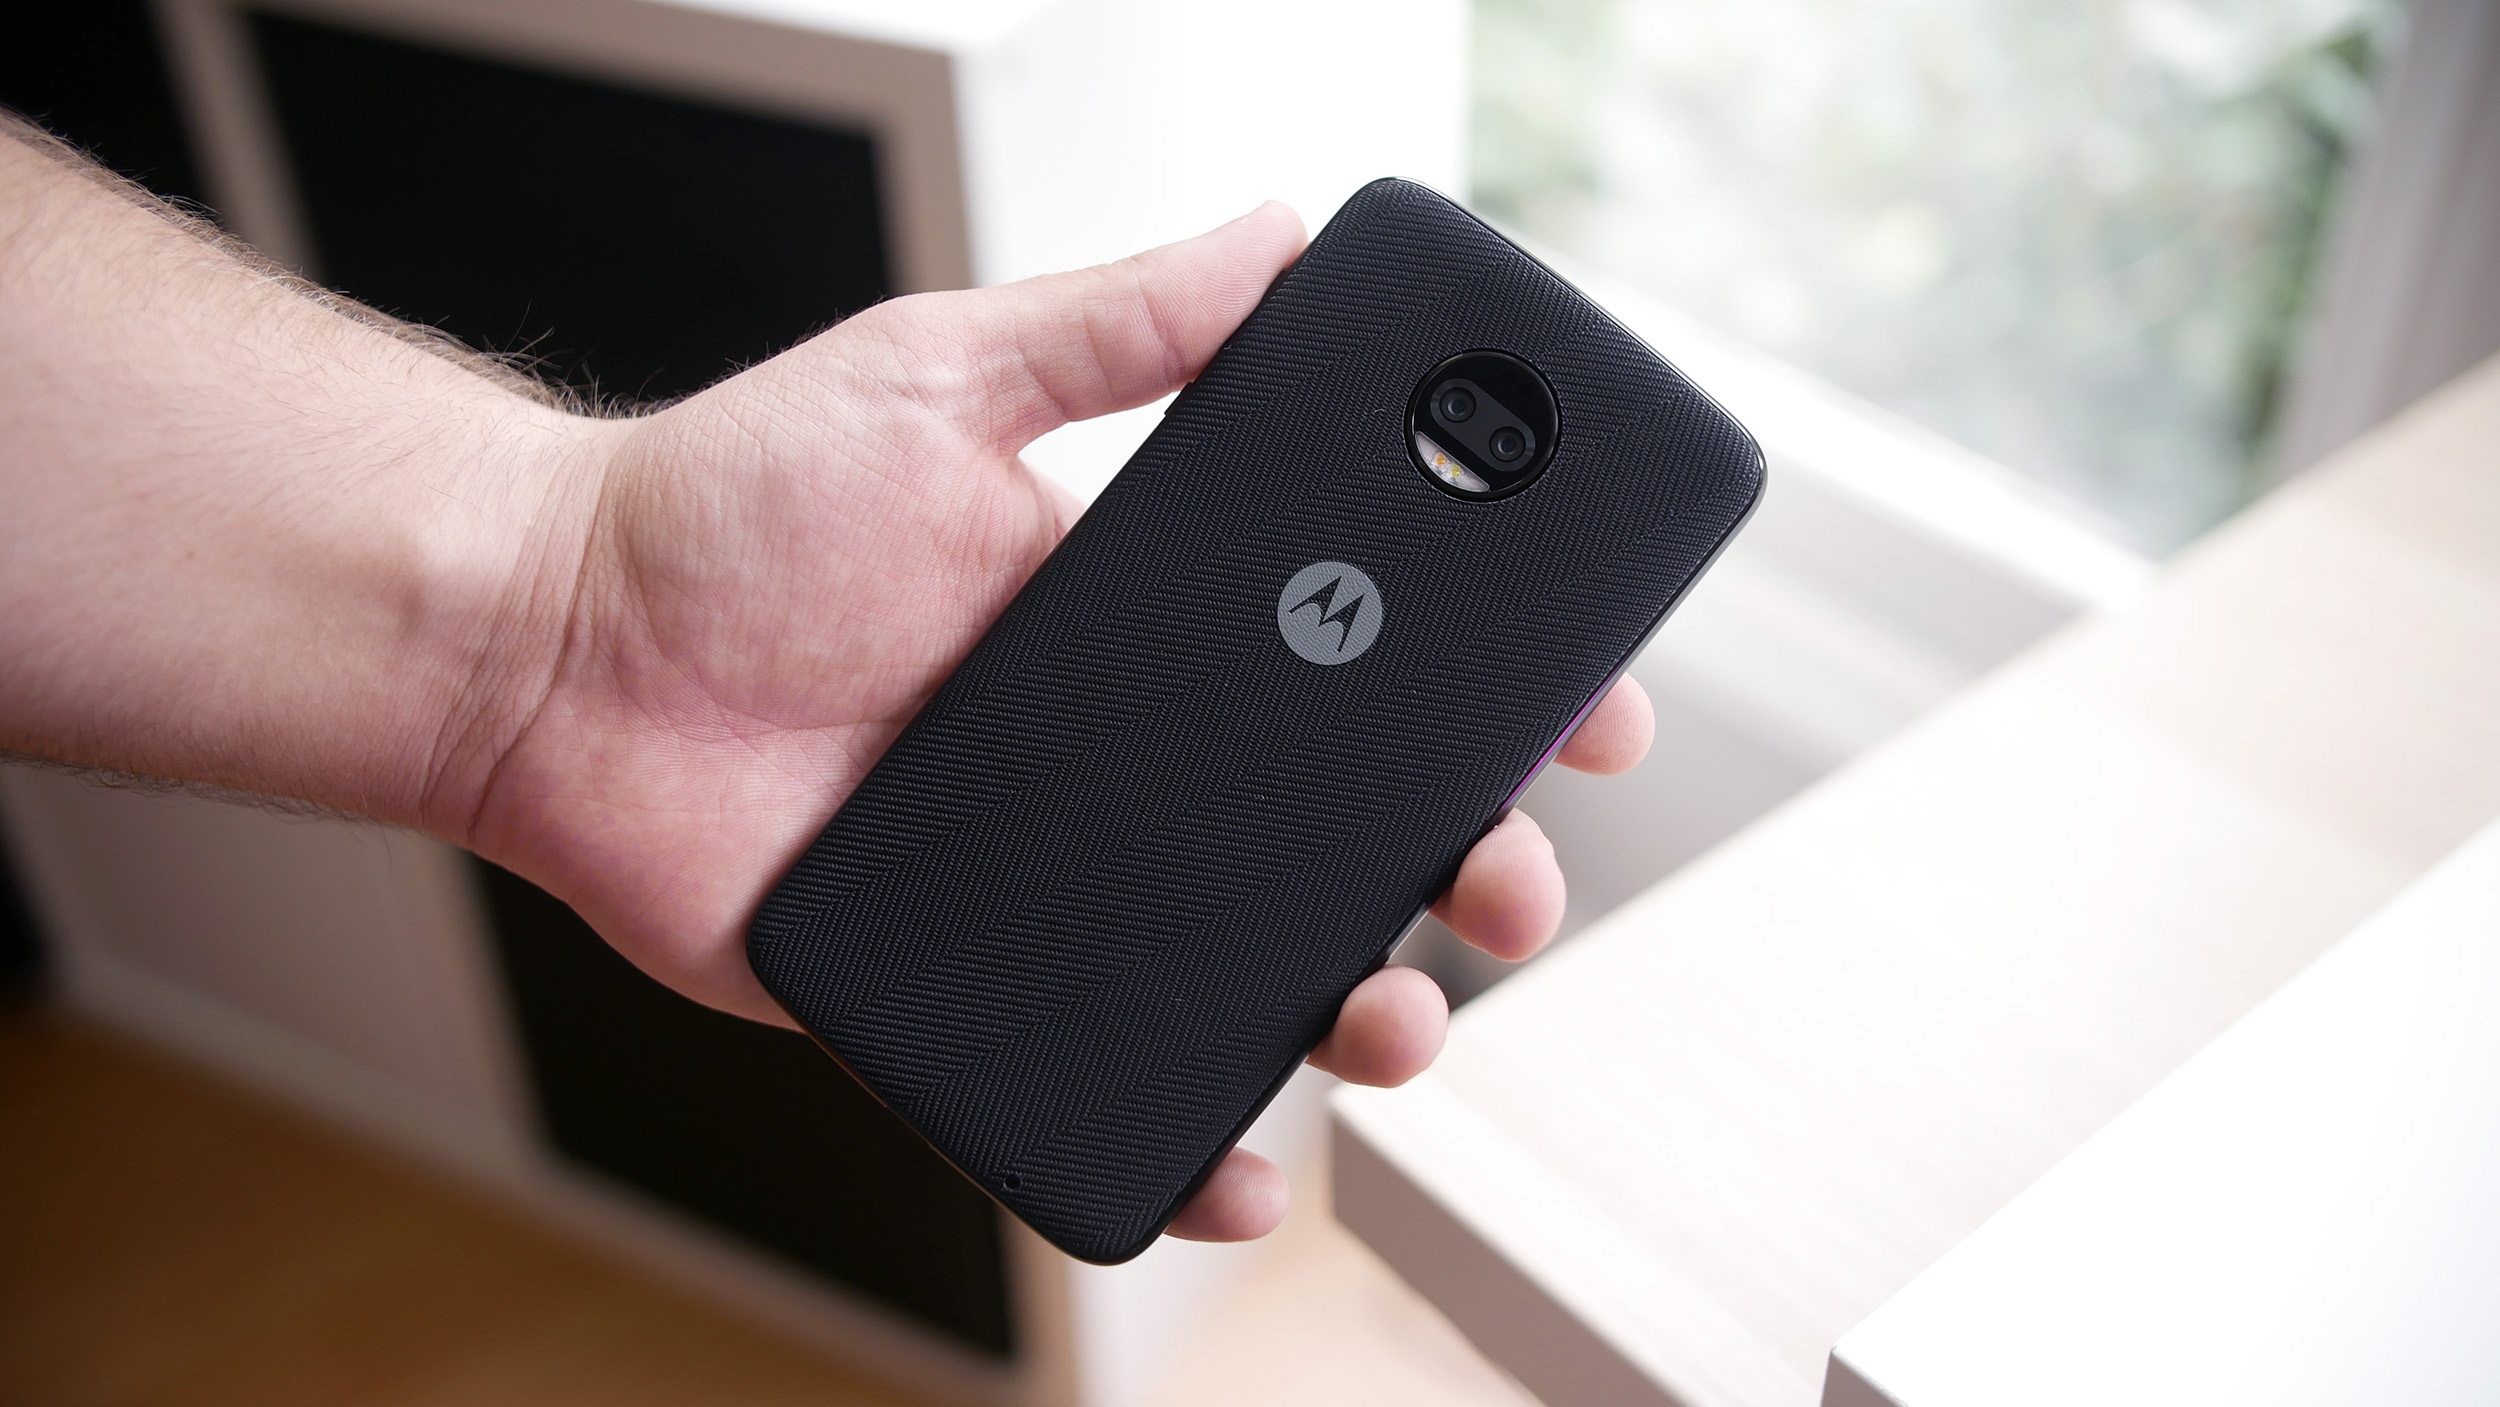 Moto Z2 Force: The first 5 things you need to do to get started